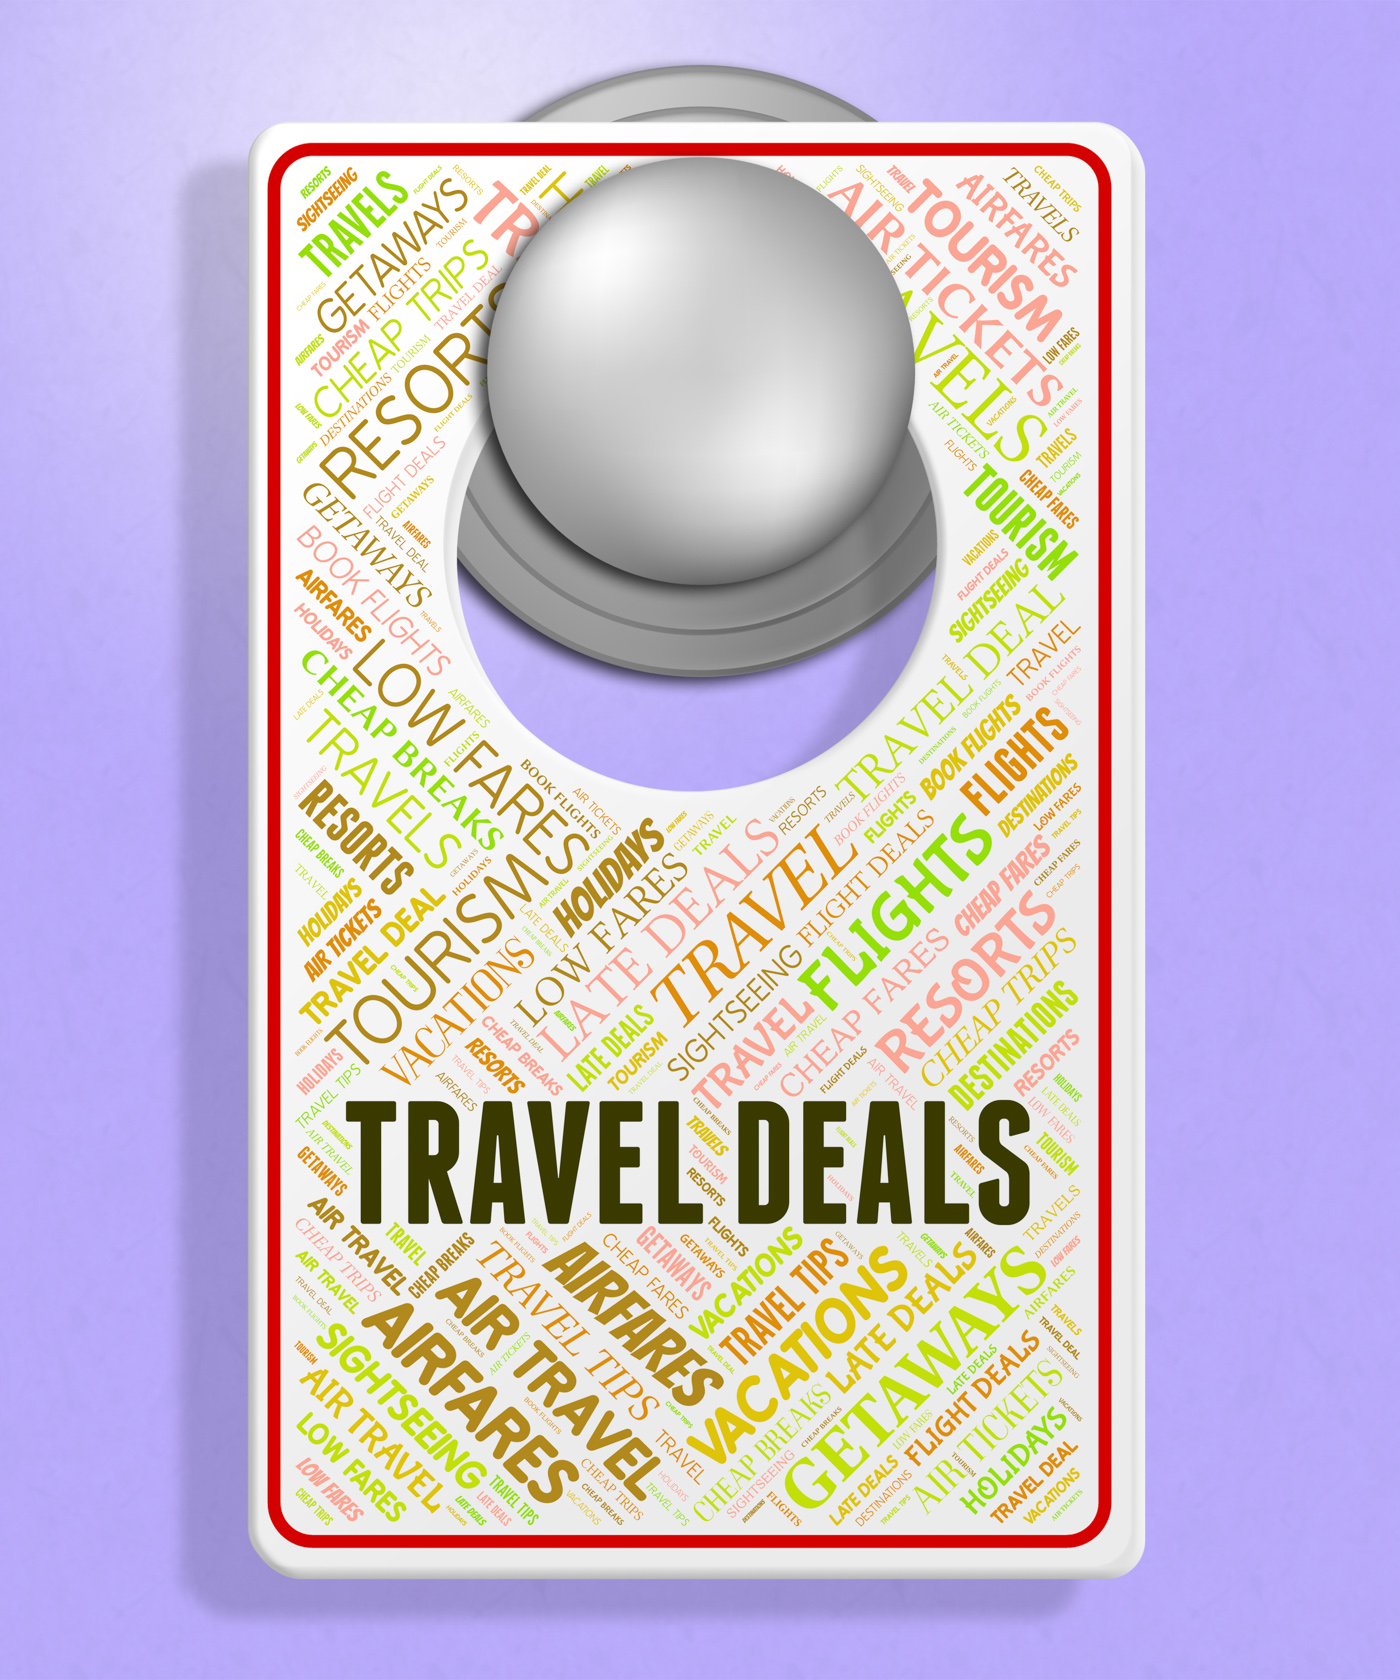 Travel deals represents holiday discount and sign photo